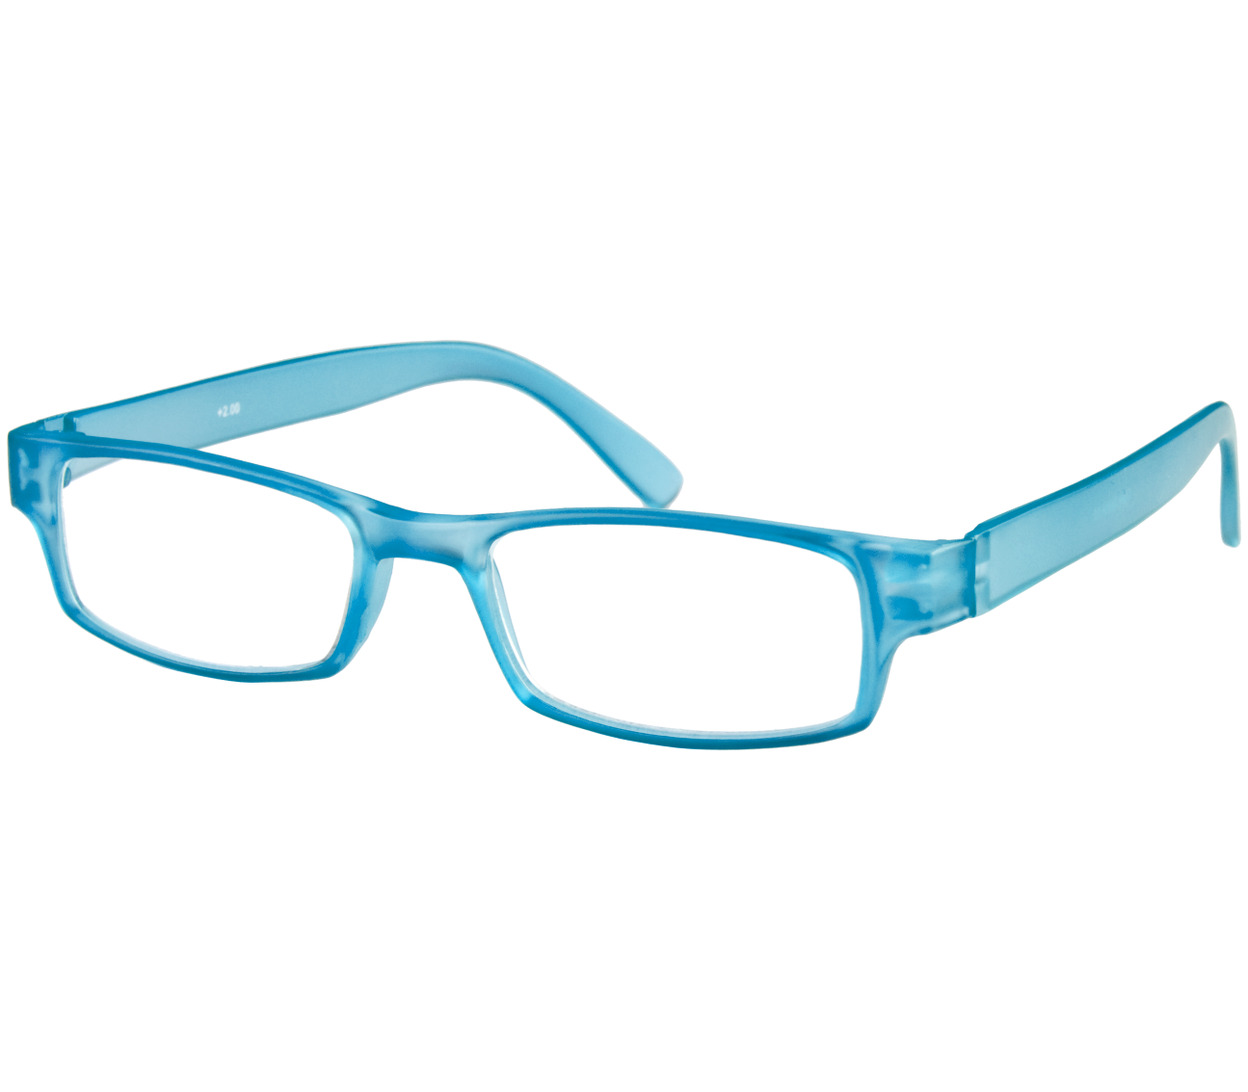 Friski (Blue) Classic Reading Glasses